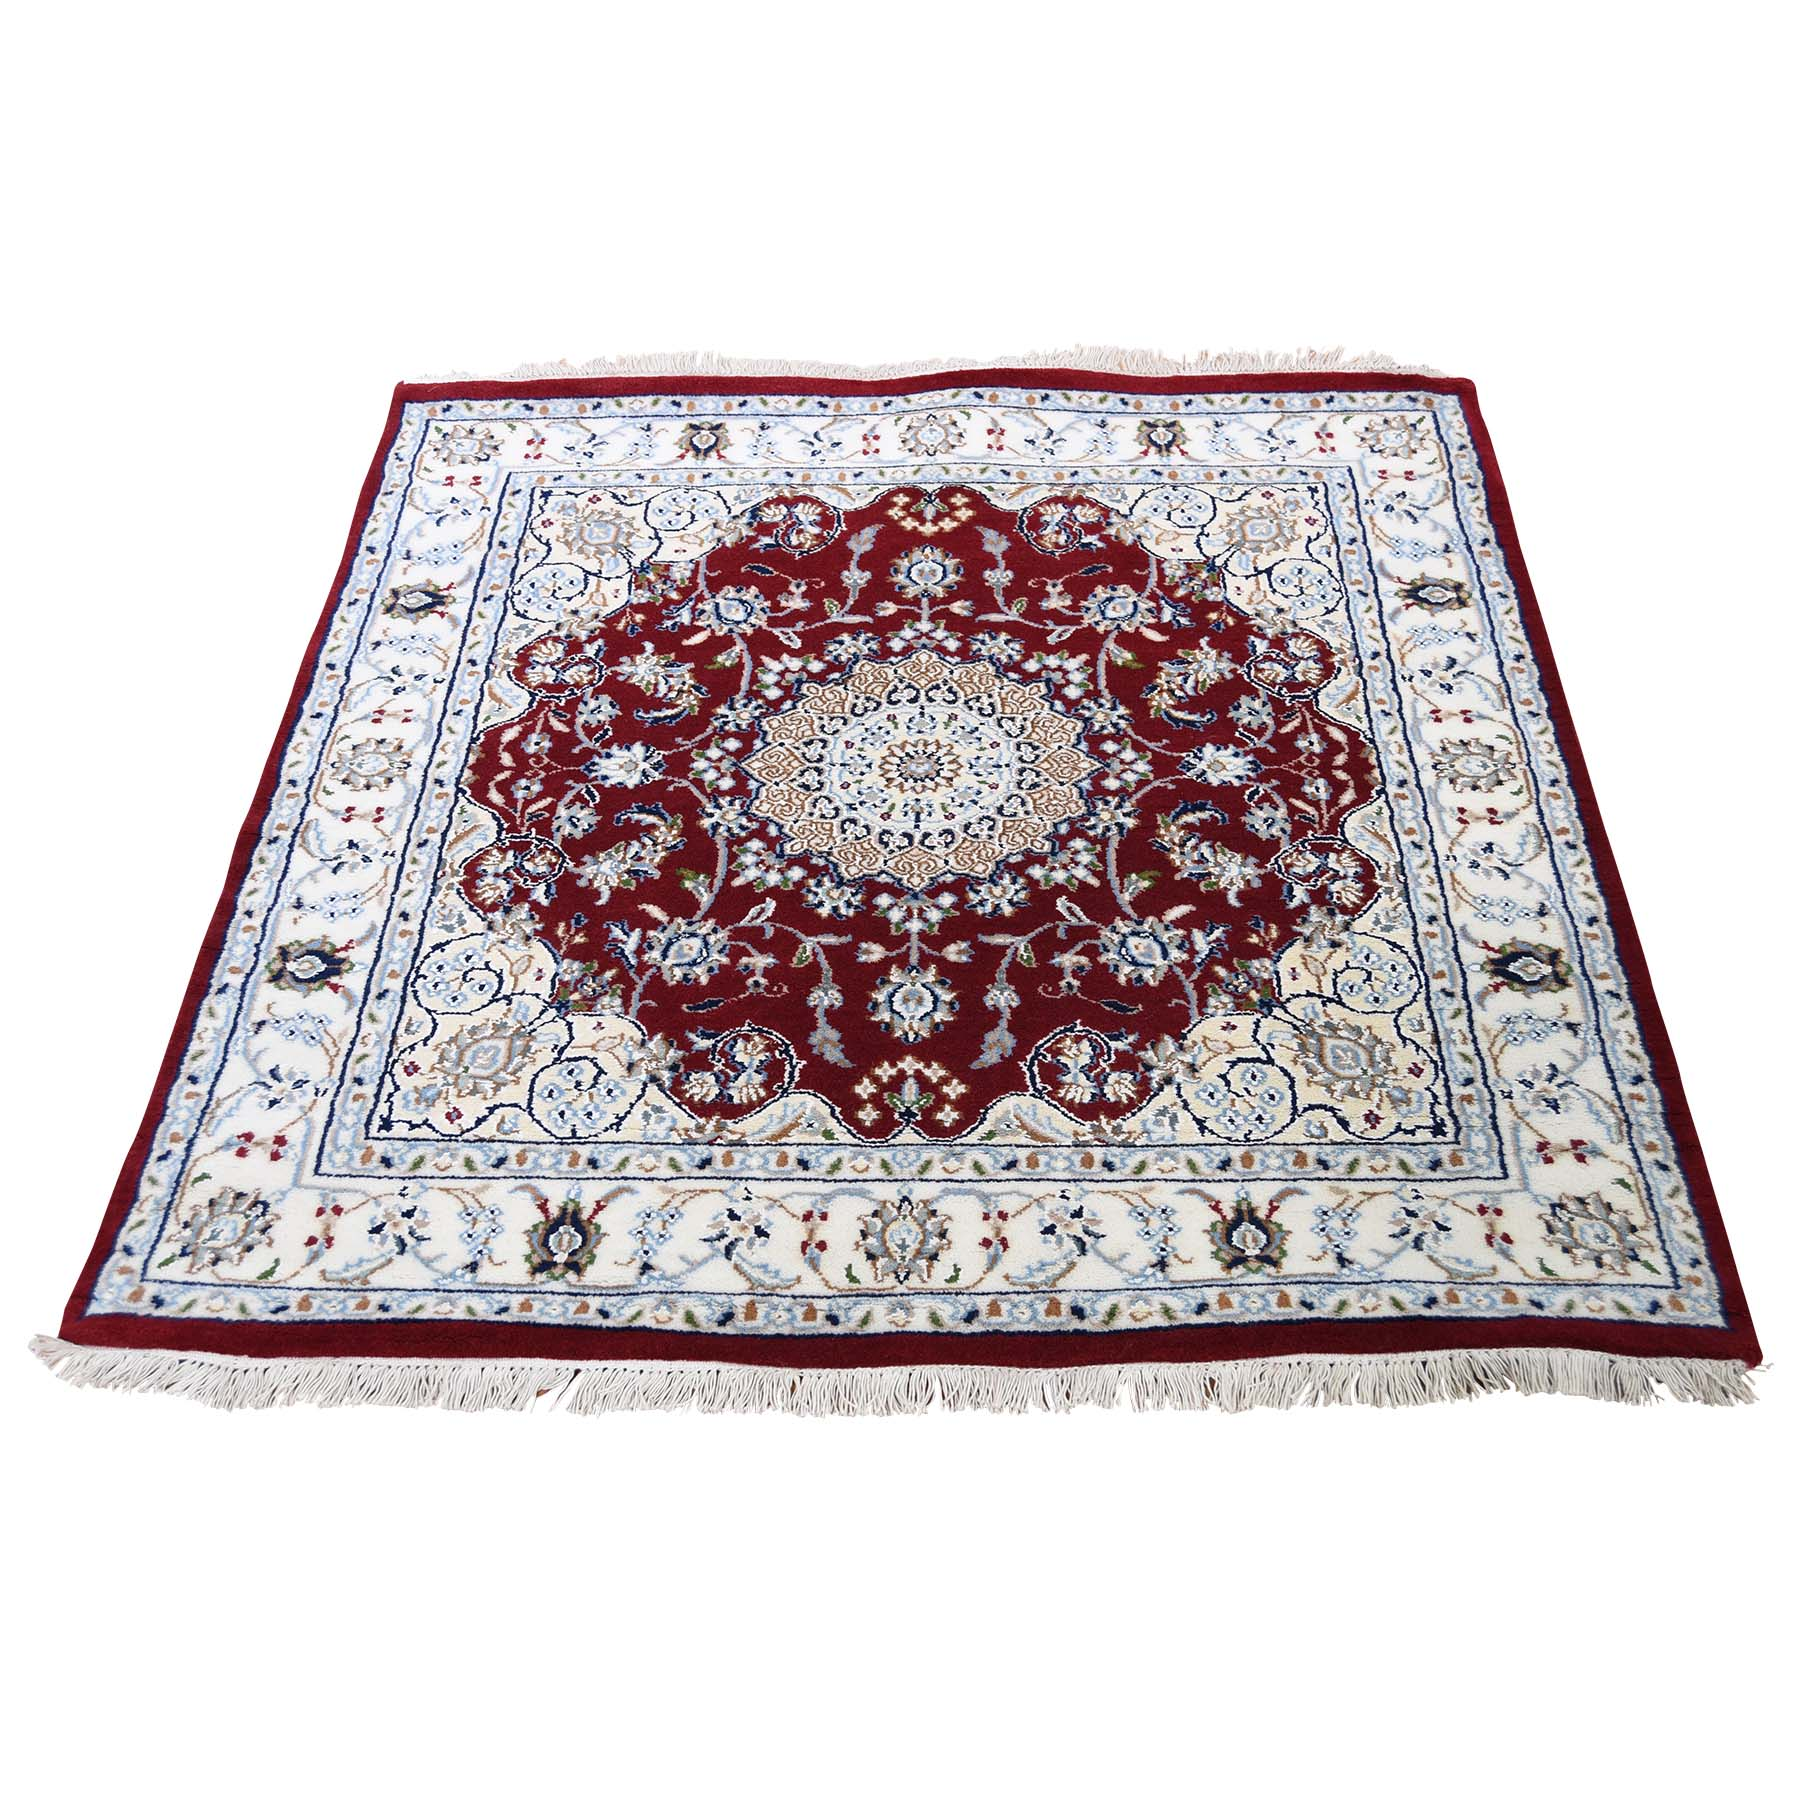 "3'10""X3'10"" Wool And Silk 300 Kpsi Red Square Nain Hand-Knotted Oriental Rug moadcc86"